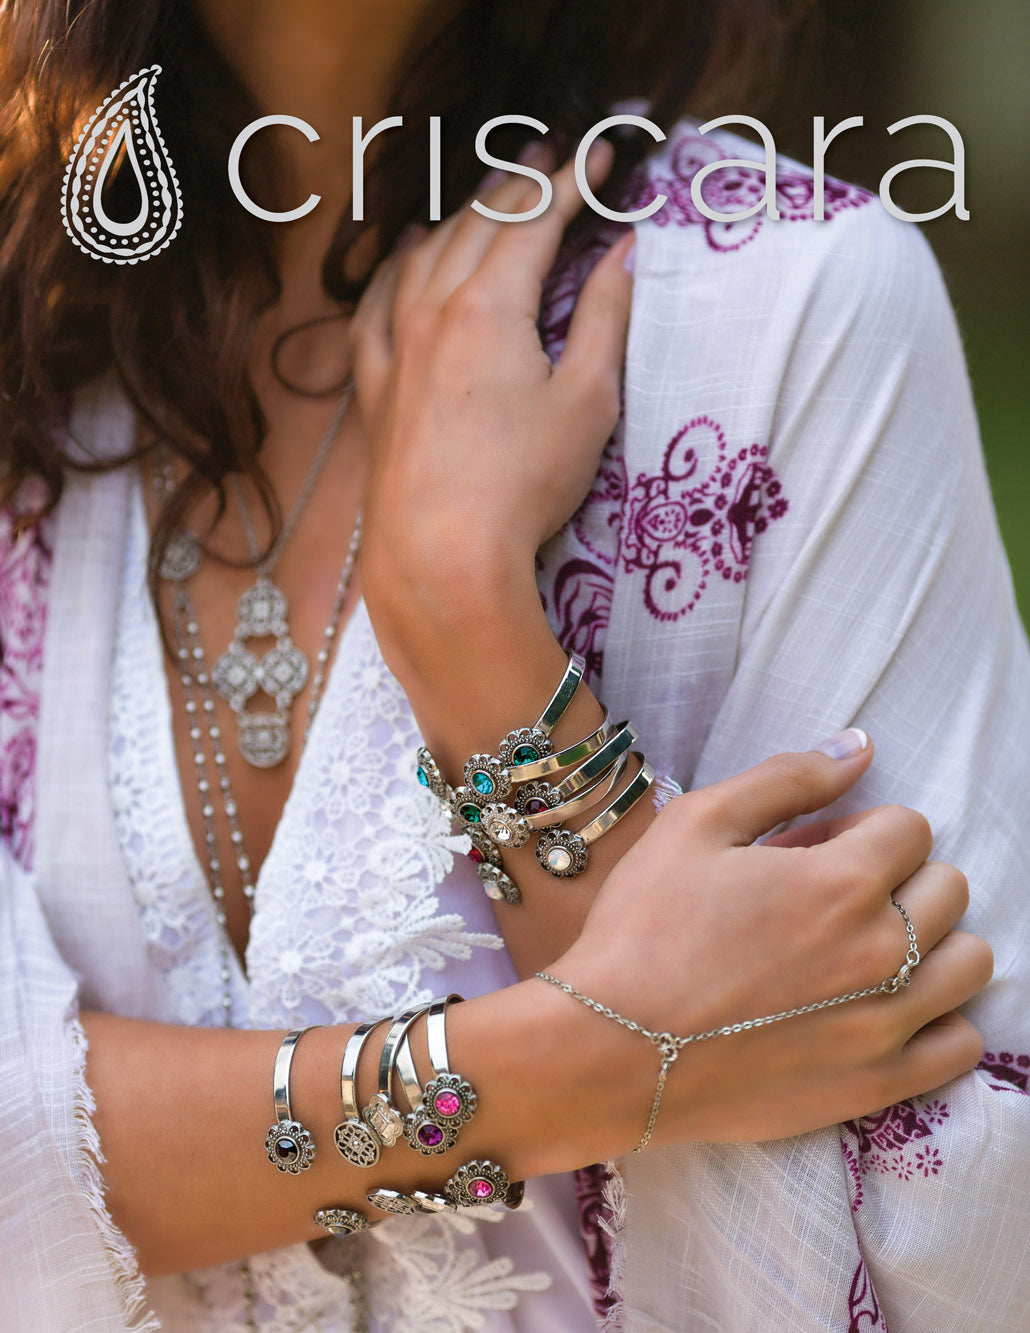 Medalia Muse f/w 2015 collection lookbook | modern boho jewelry | criscara